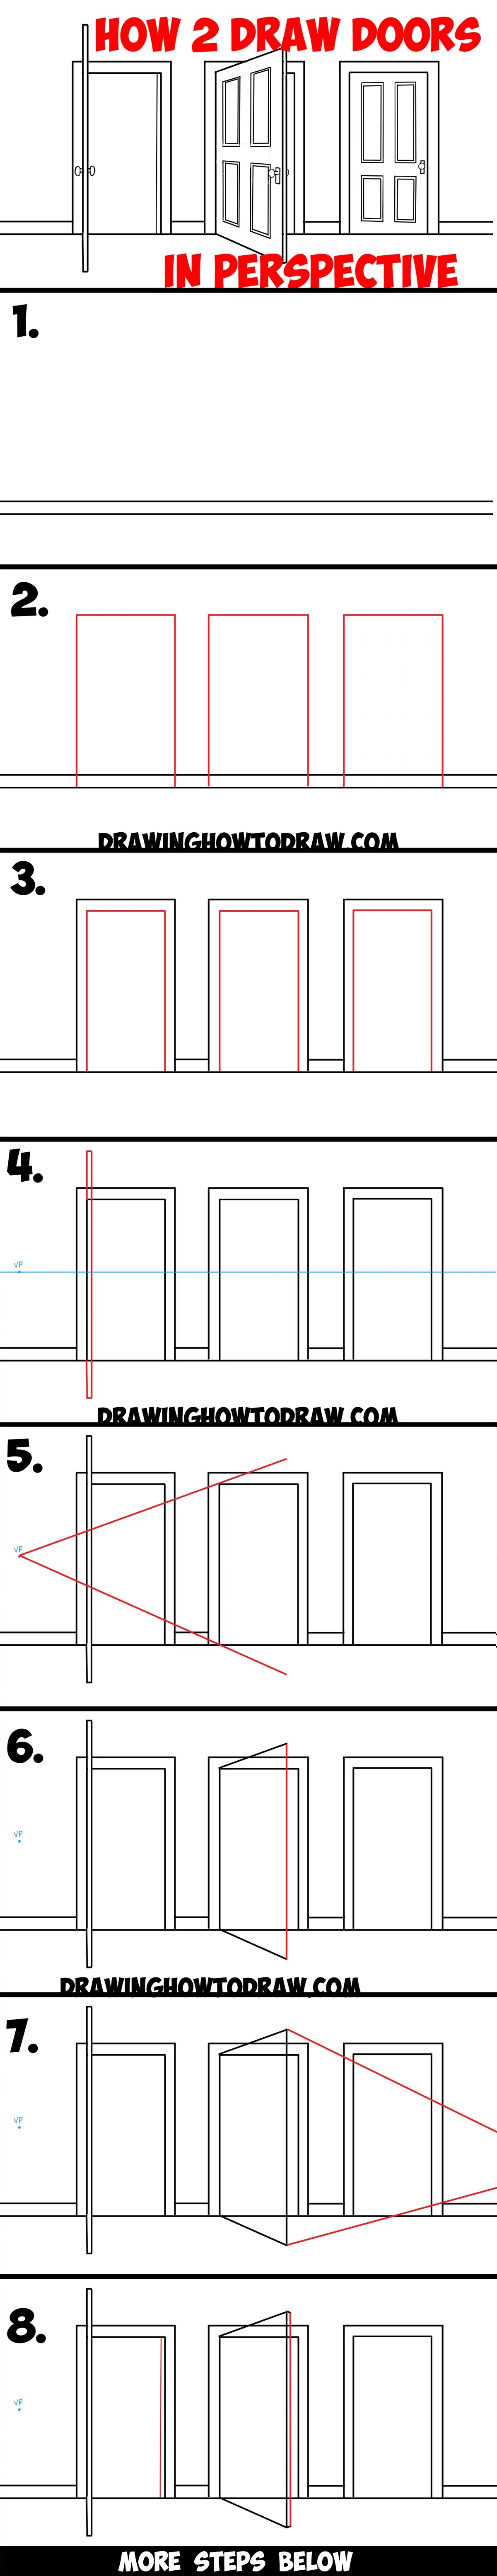 How To Draw Doors Opened Closed In Two Point